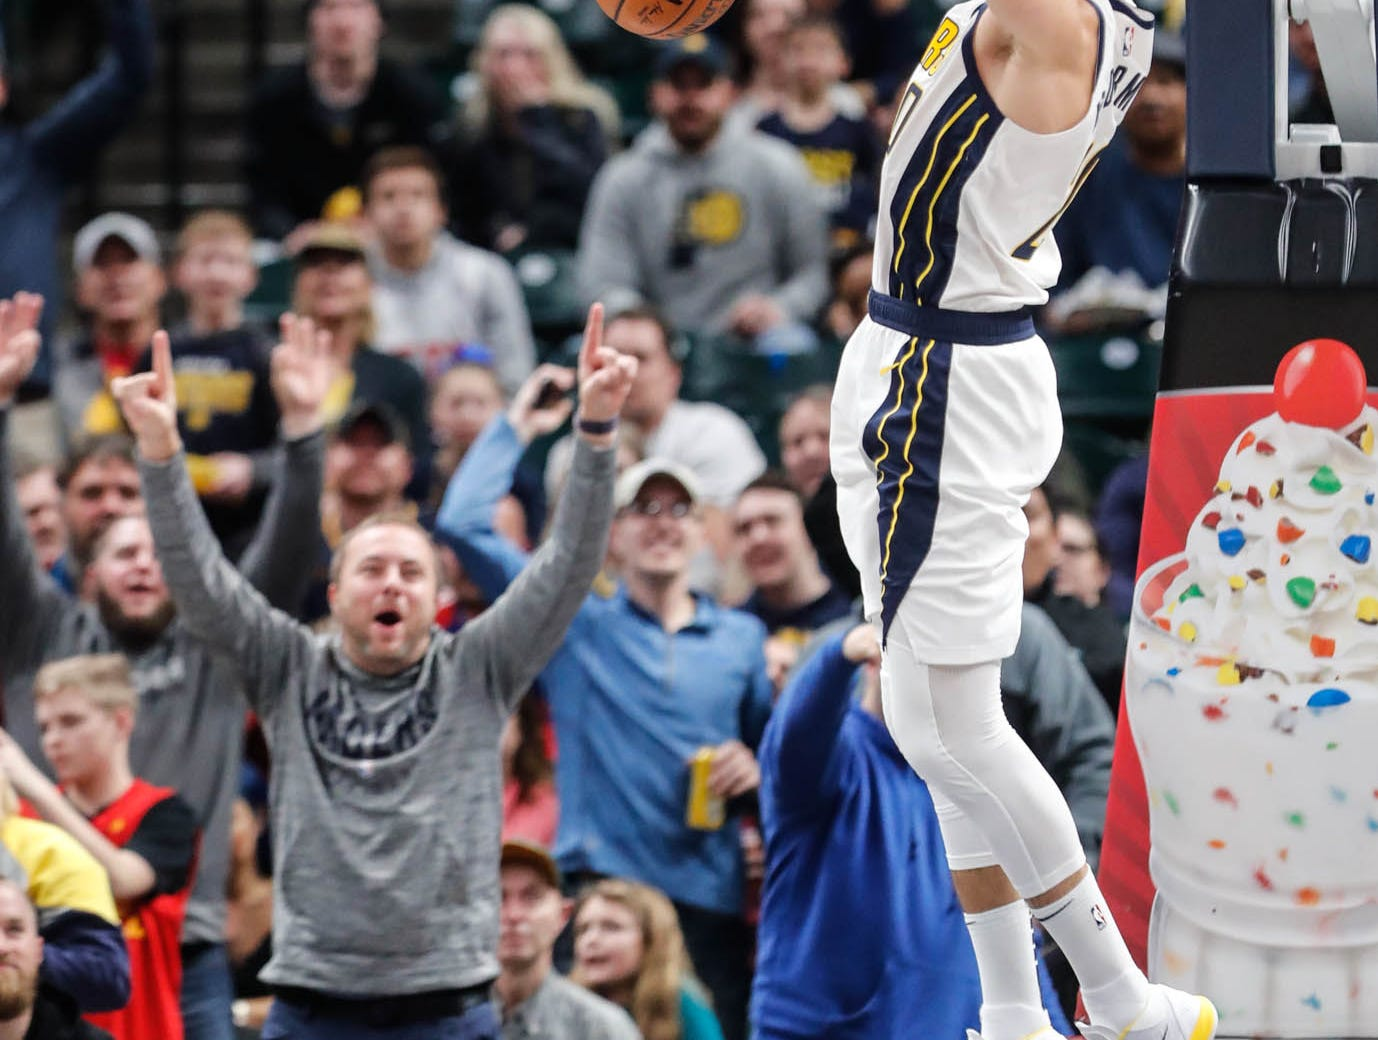 Indiana Pacer's forward Doug McDermott (20) dunks during a game between the Indiana Pacers and the Detroit Pistons at at Bankers Life Fieldhouse in Indianapolis on Friday, Dec. 28, 2018.